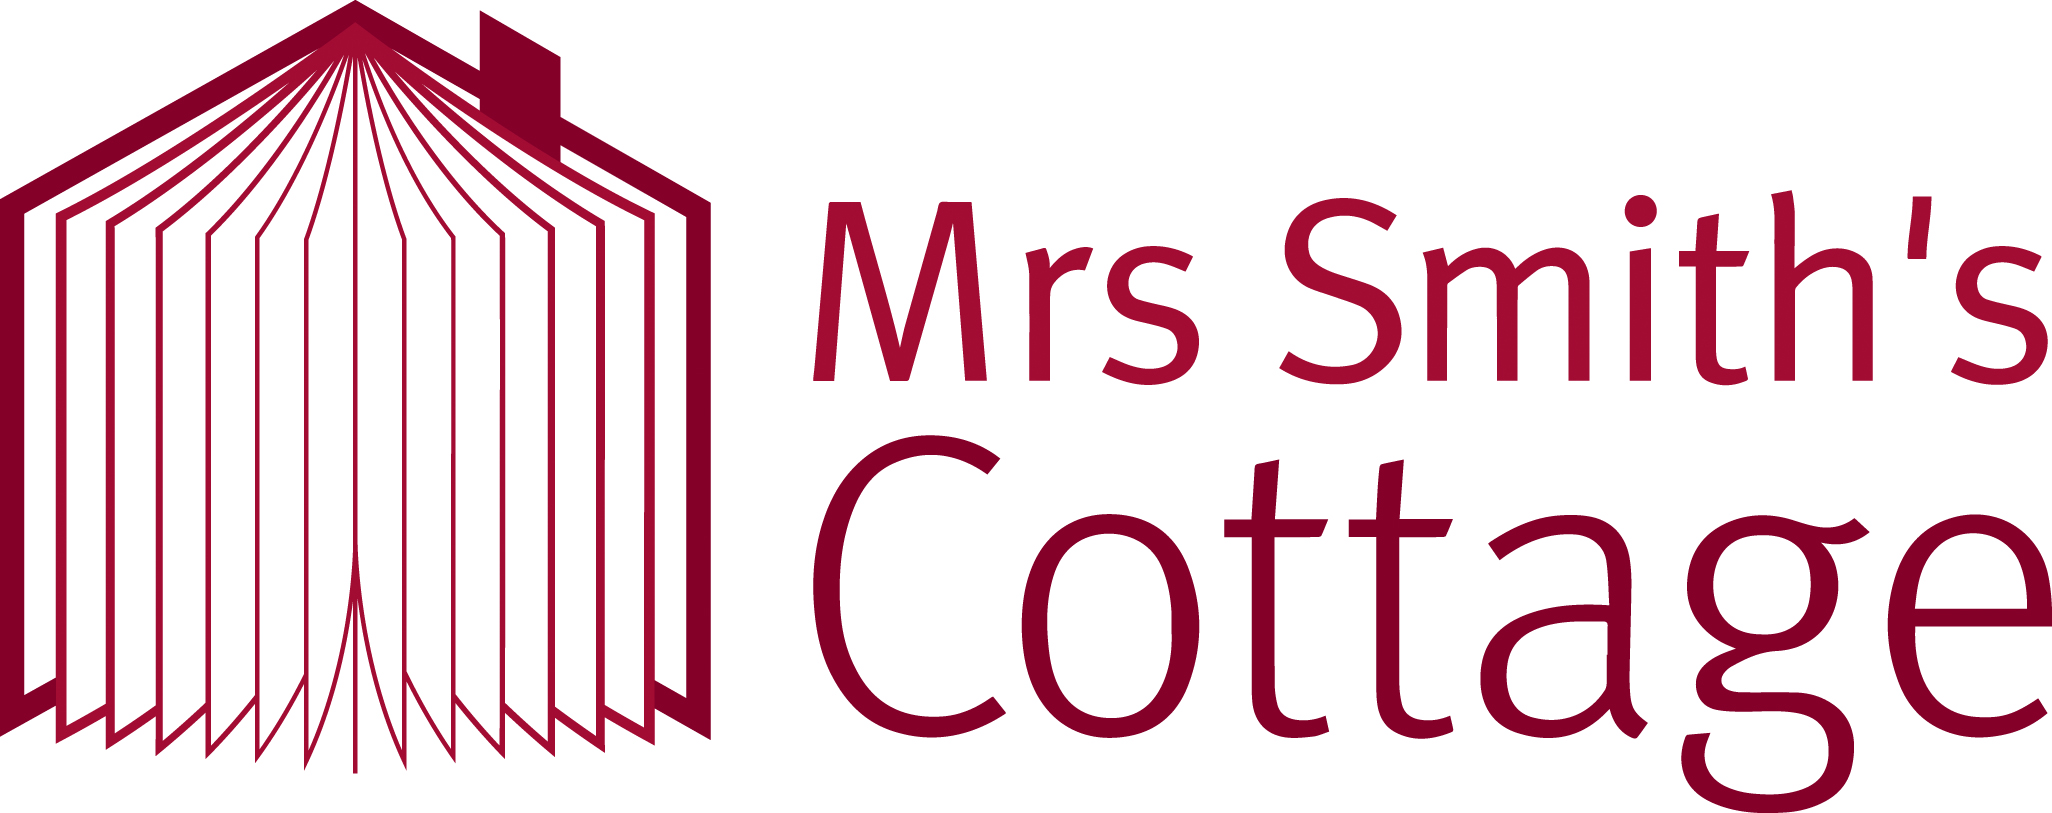 Mrs Smith's Cottage